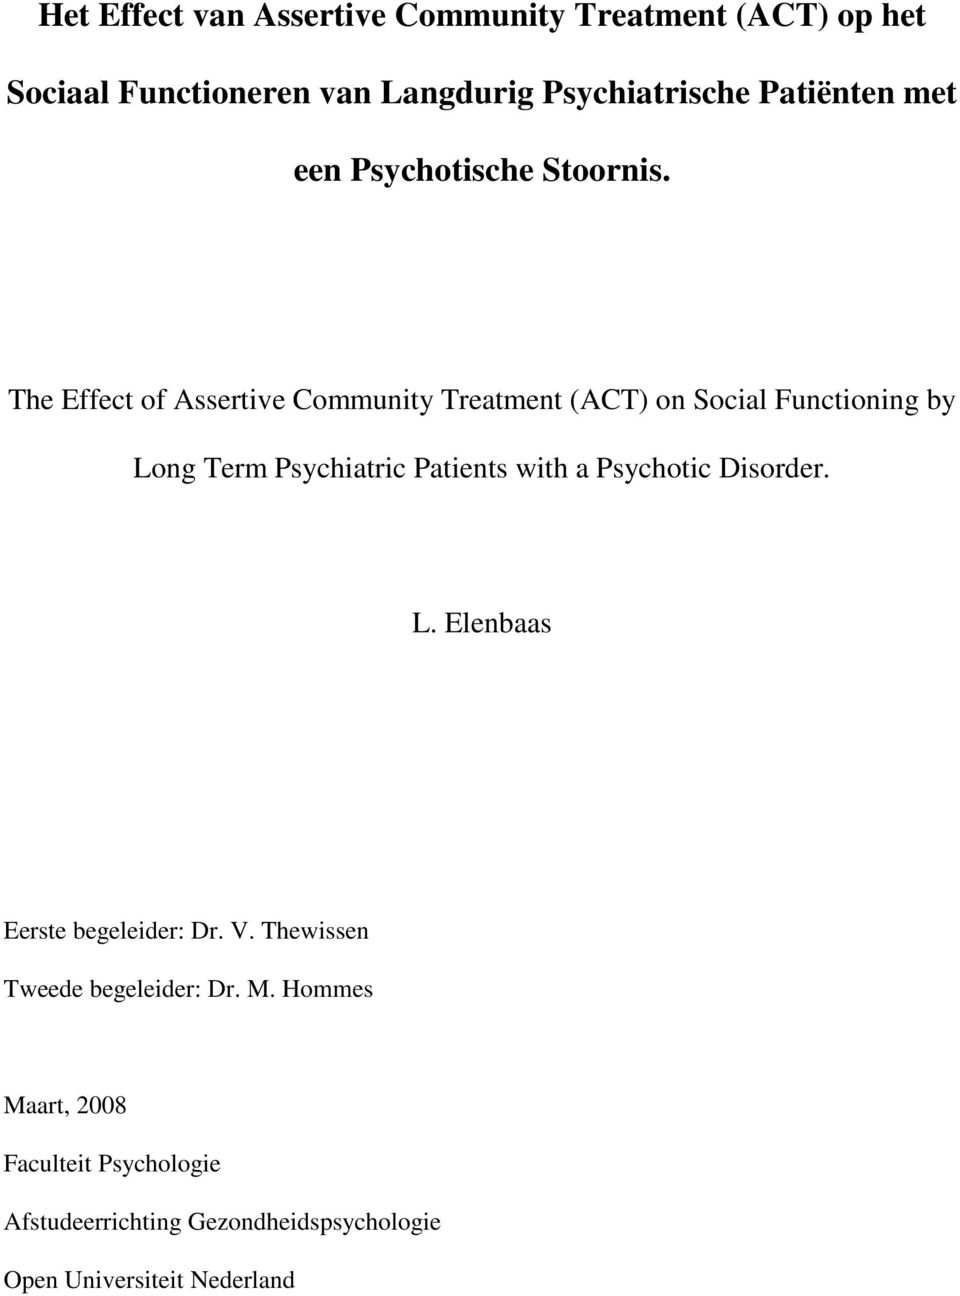 The Effect of Assertive Community Treatment (ACT) on Social Functioning by Long Term Psychiatric Patients with a